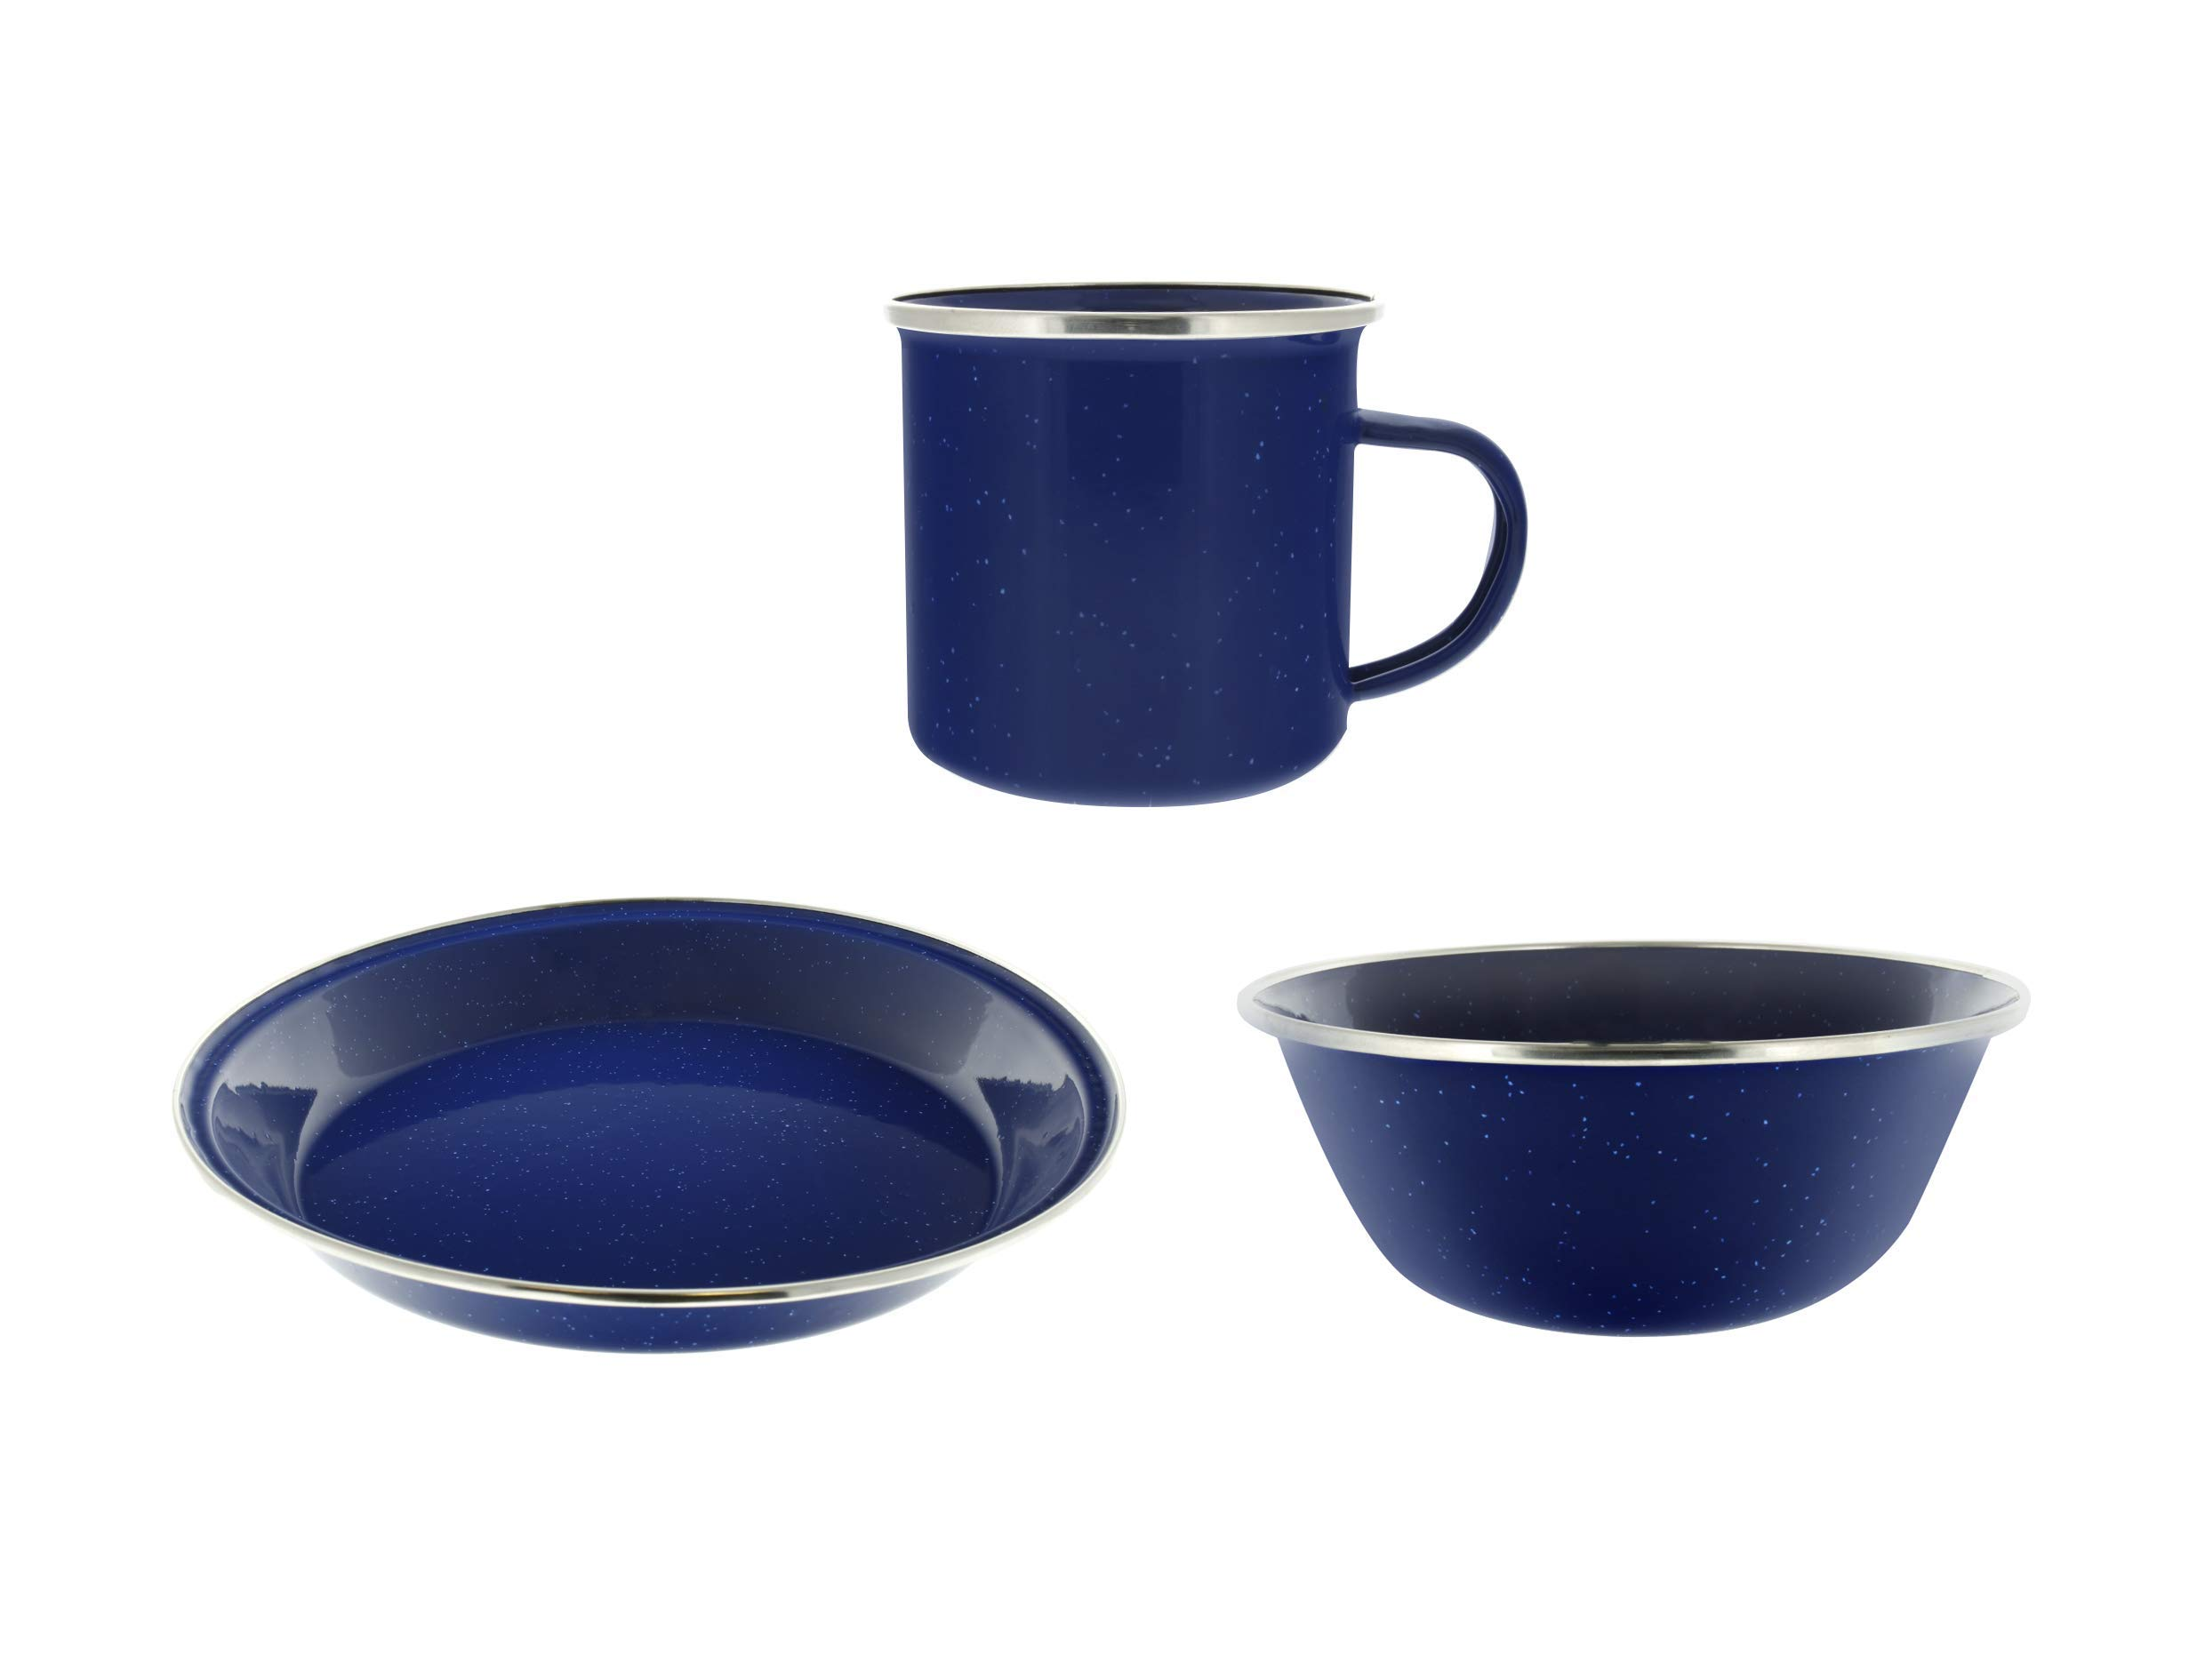 Direct 2 Boater Camping Dinnerware 1-Person Set, 3 Items - 1 ea of 24 oz Mug, 6'' Bowl & 10'' Plate Metal w/Blue Enamel Finish